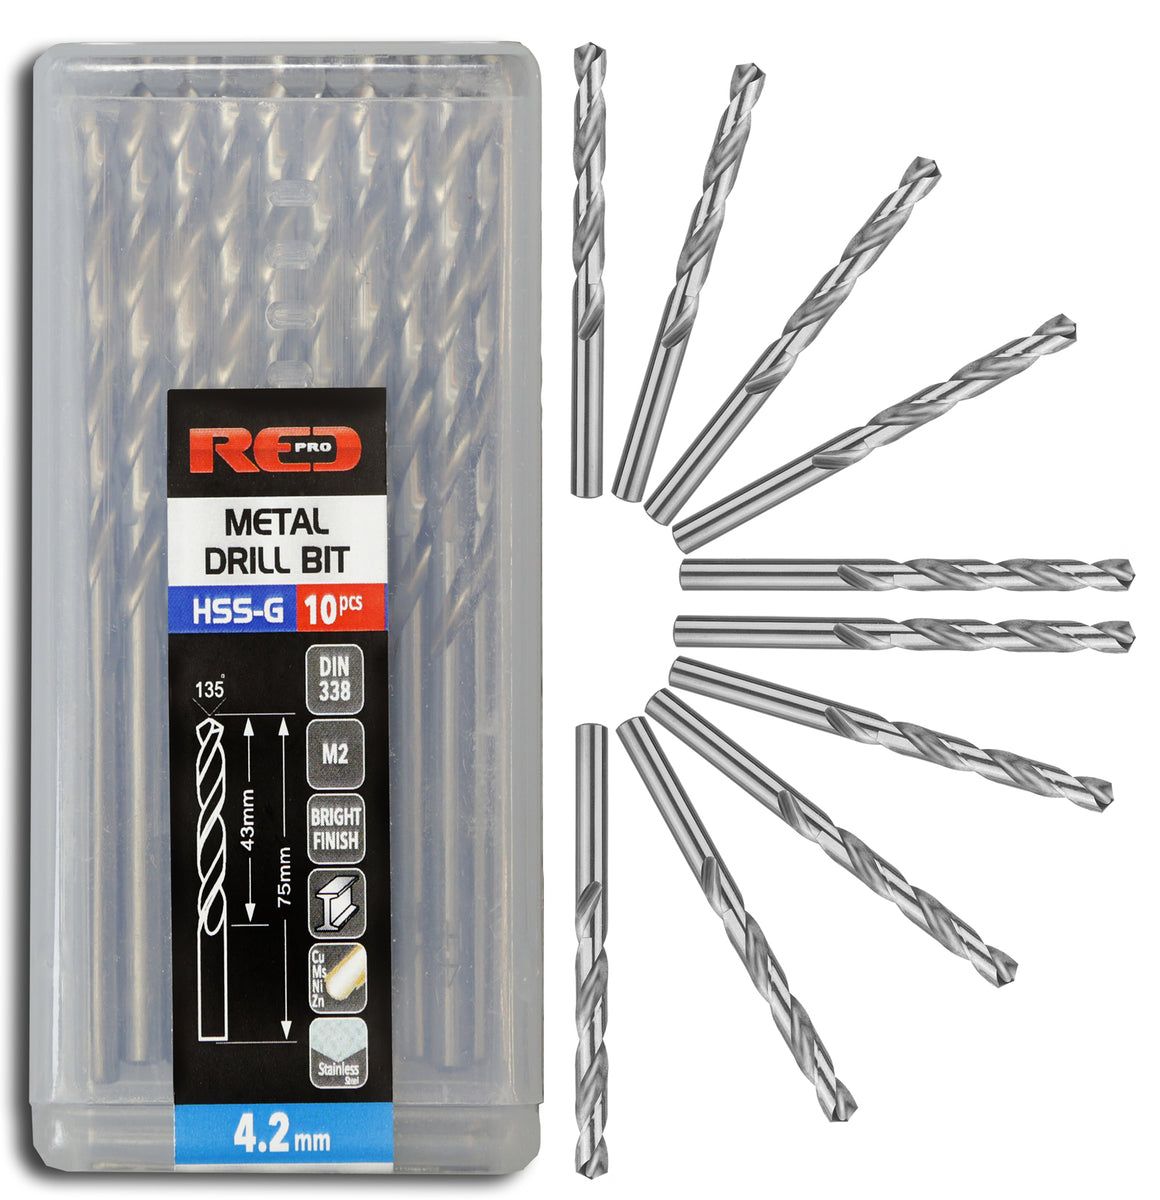 Red Pro Tools Metal Drill Bit HSS-G 4.2mm - 10 Pieces